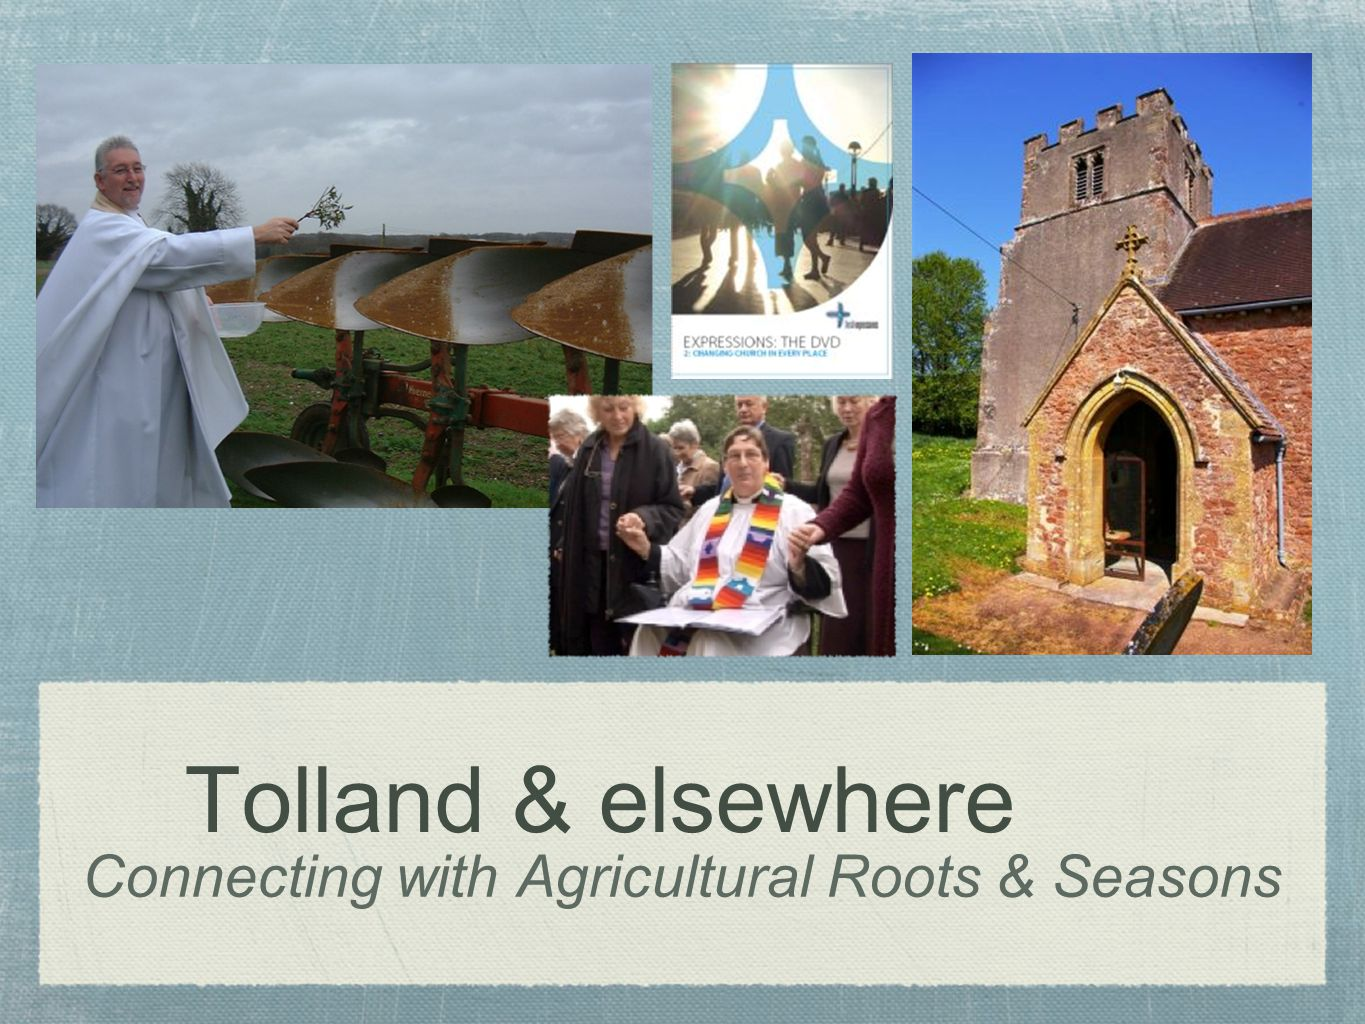 Connecting with Agricultural Roots & Seasons